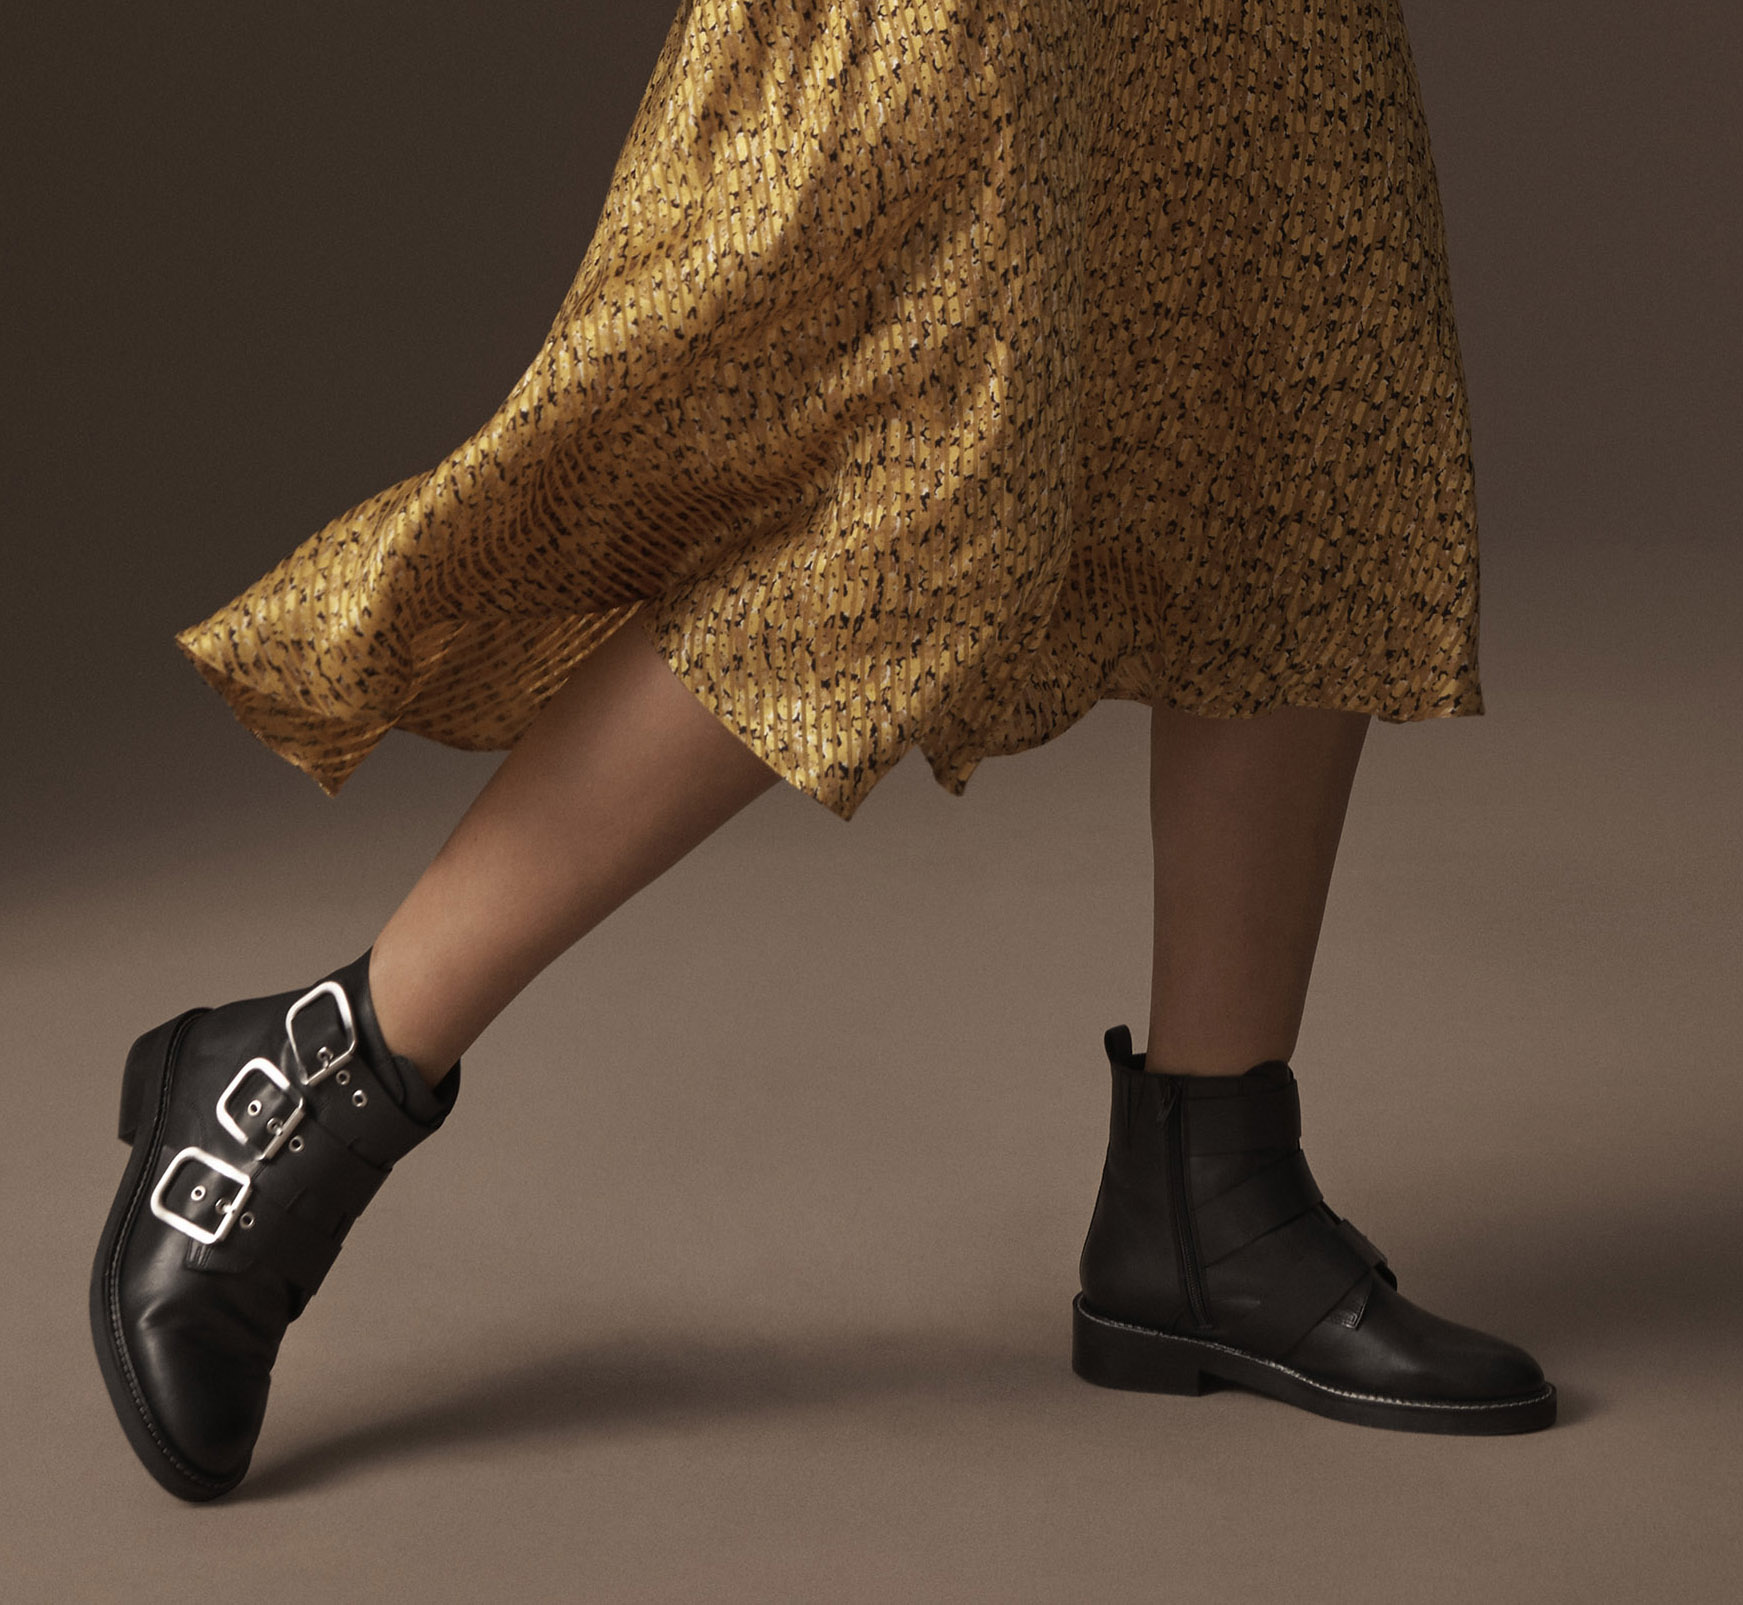 The Marks Amp Spencer Shoes That Are Set To Sell Out This Summer